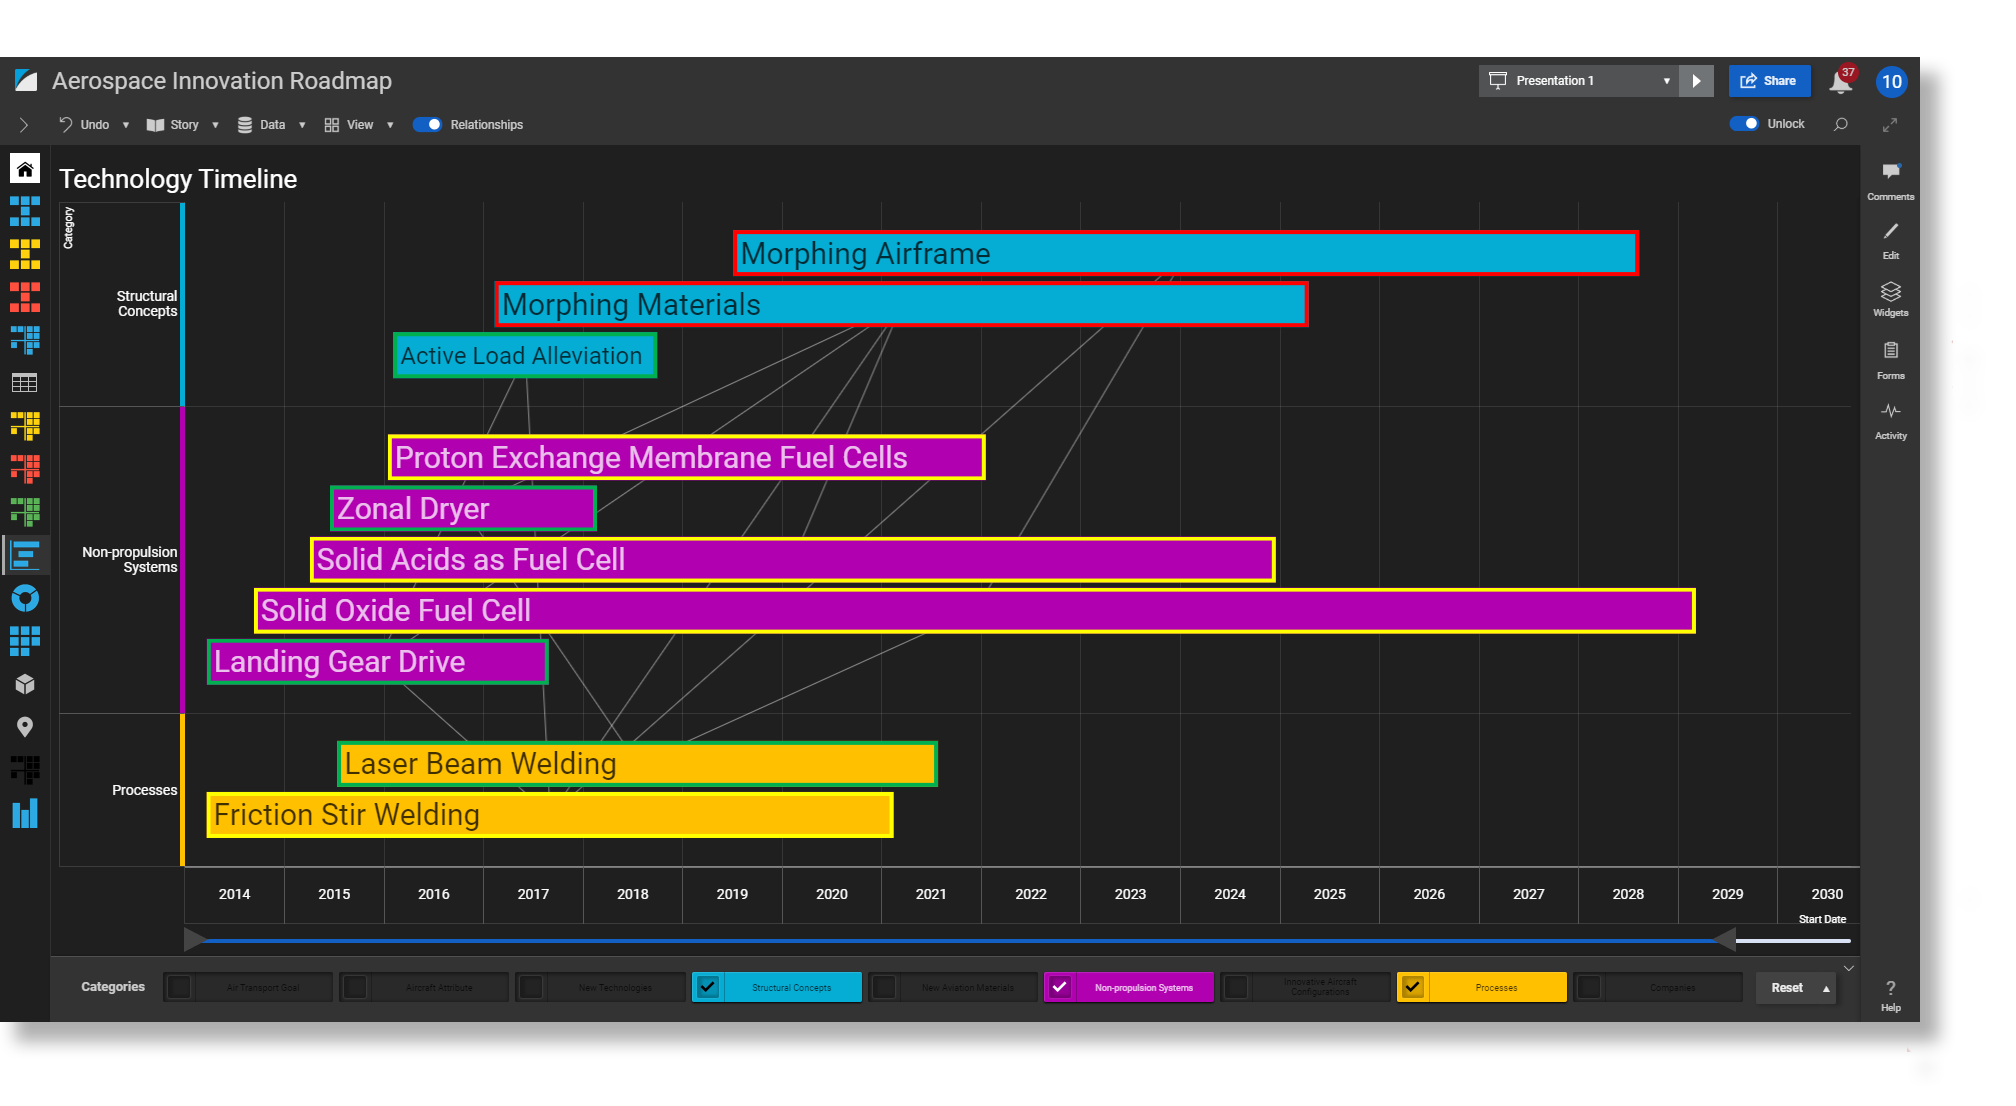 Technology Timeline with Relationships and Status